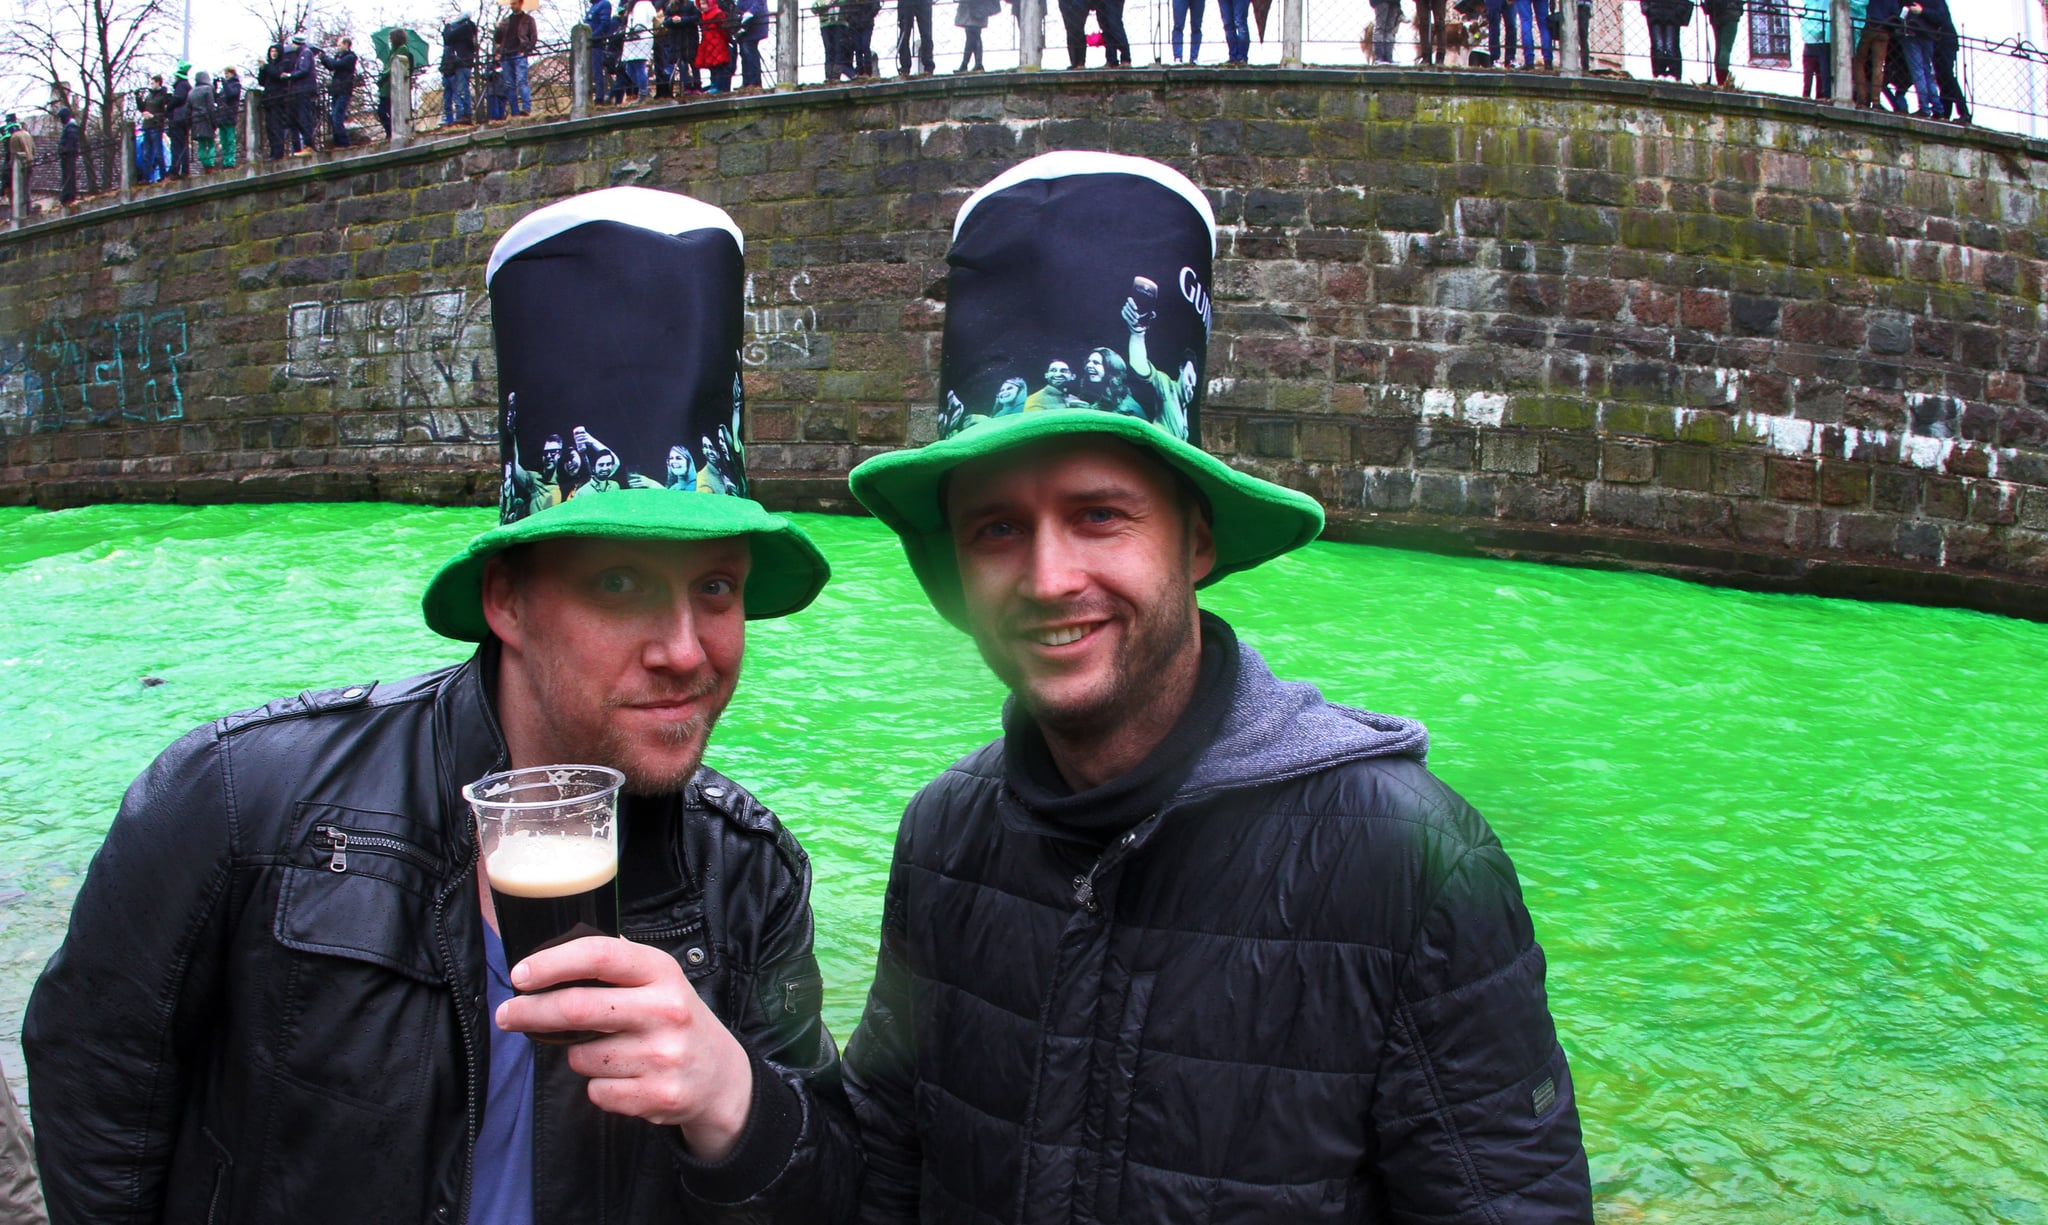 Lithuanians toasted beside a green river.